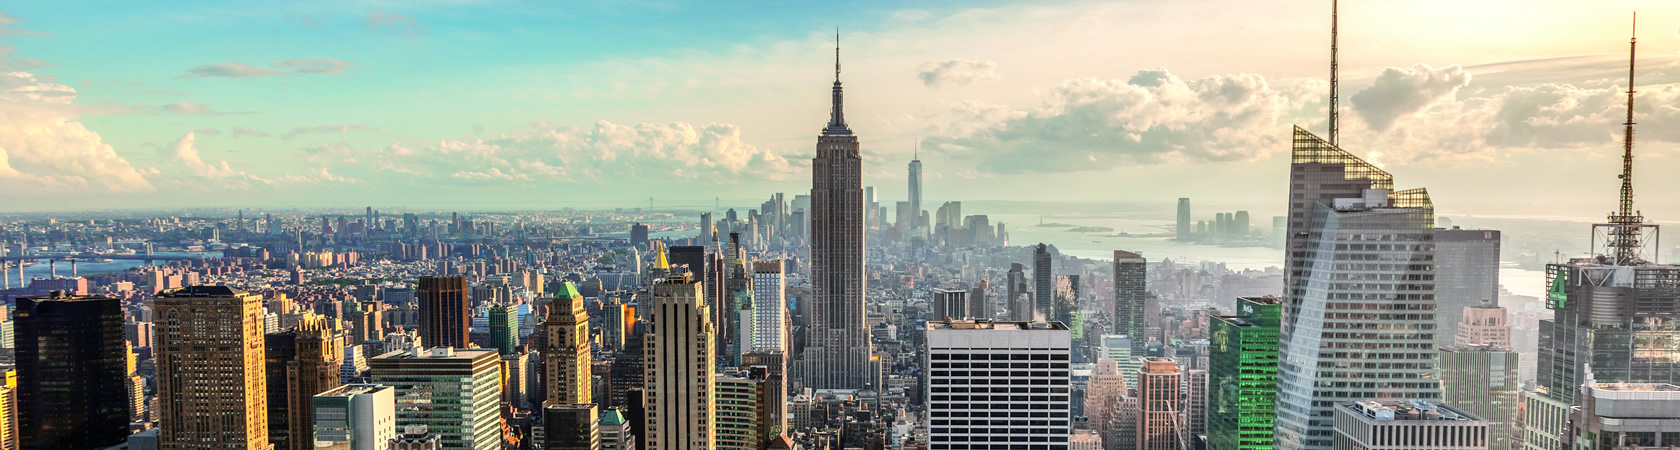 Ecole de Journalisme EFJ New York - Une formation journalisme internationale